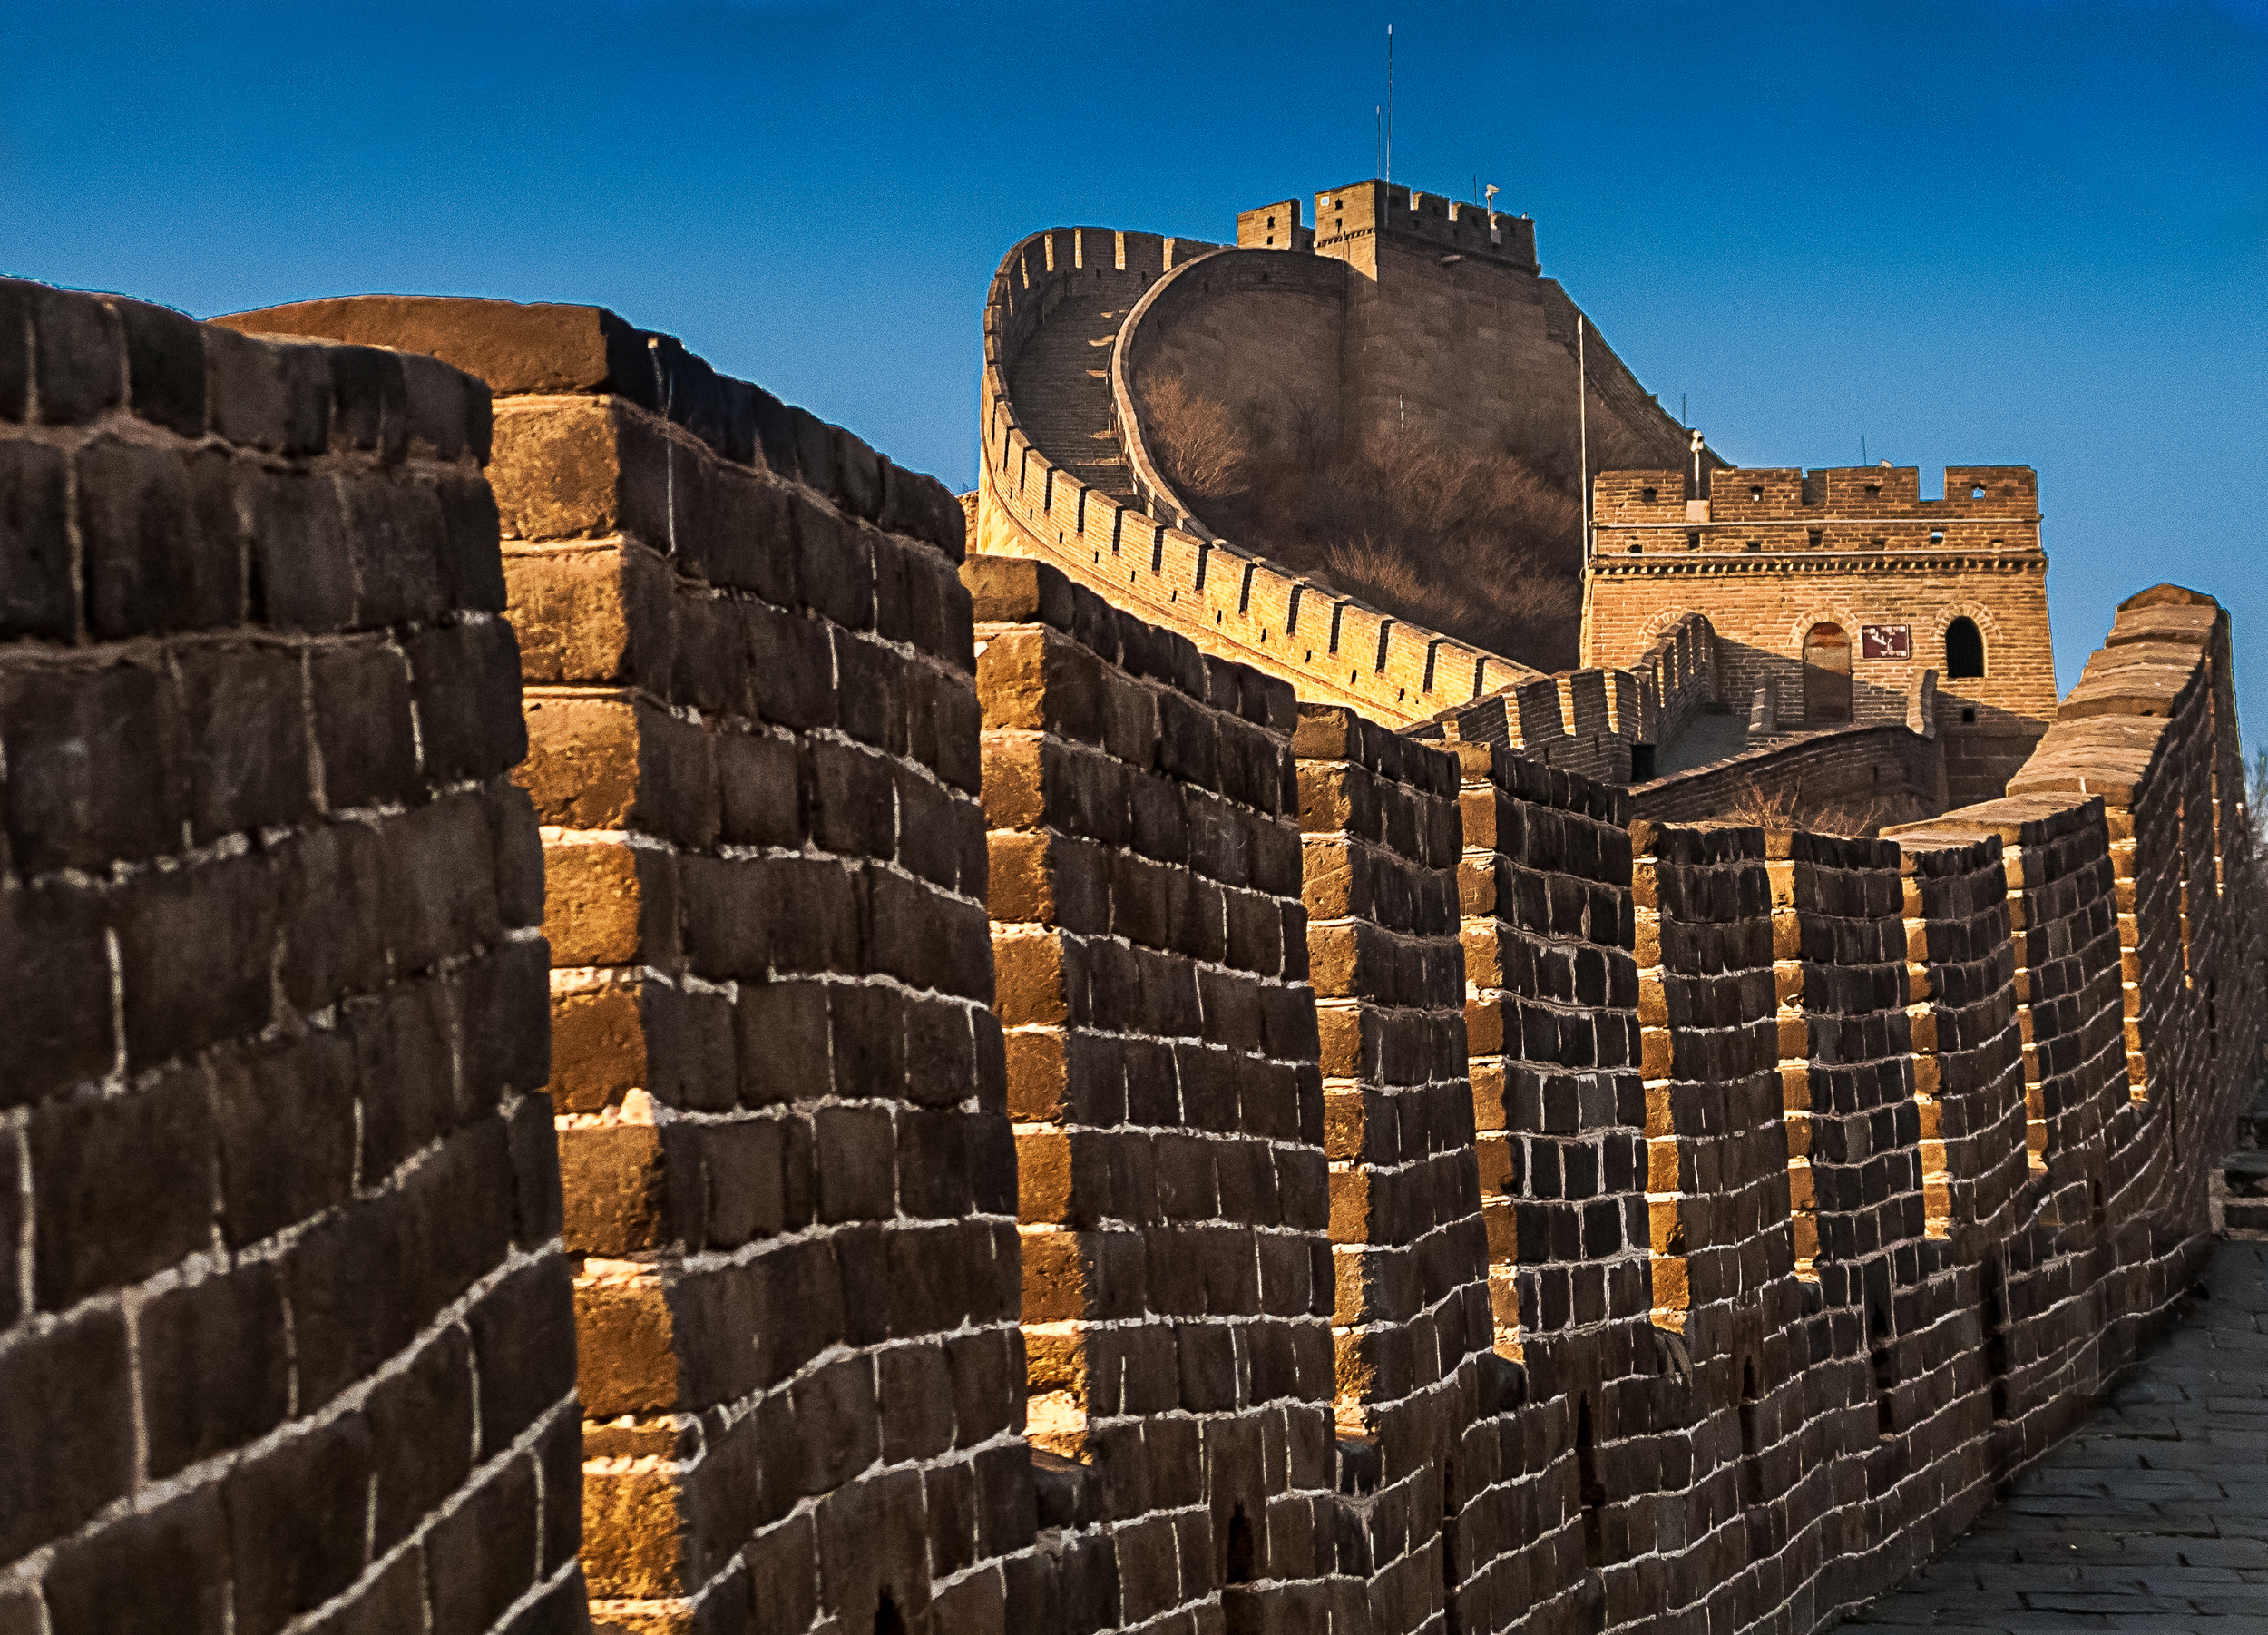 The Great Wall of China, one of the most incredible structures in the world. Plus sun!